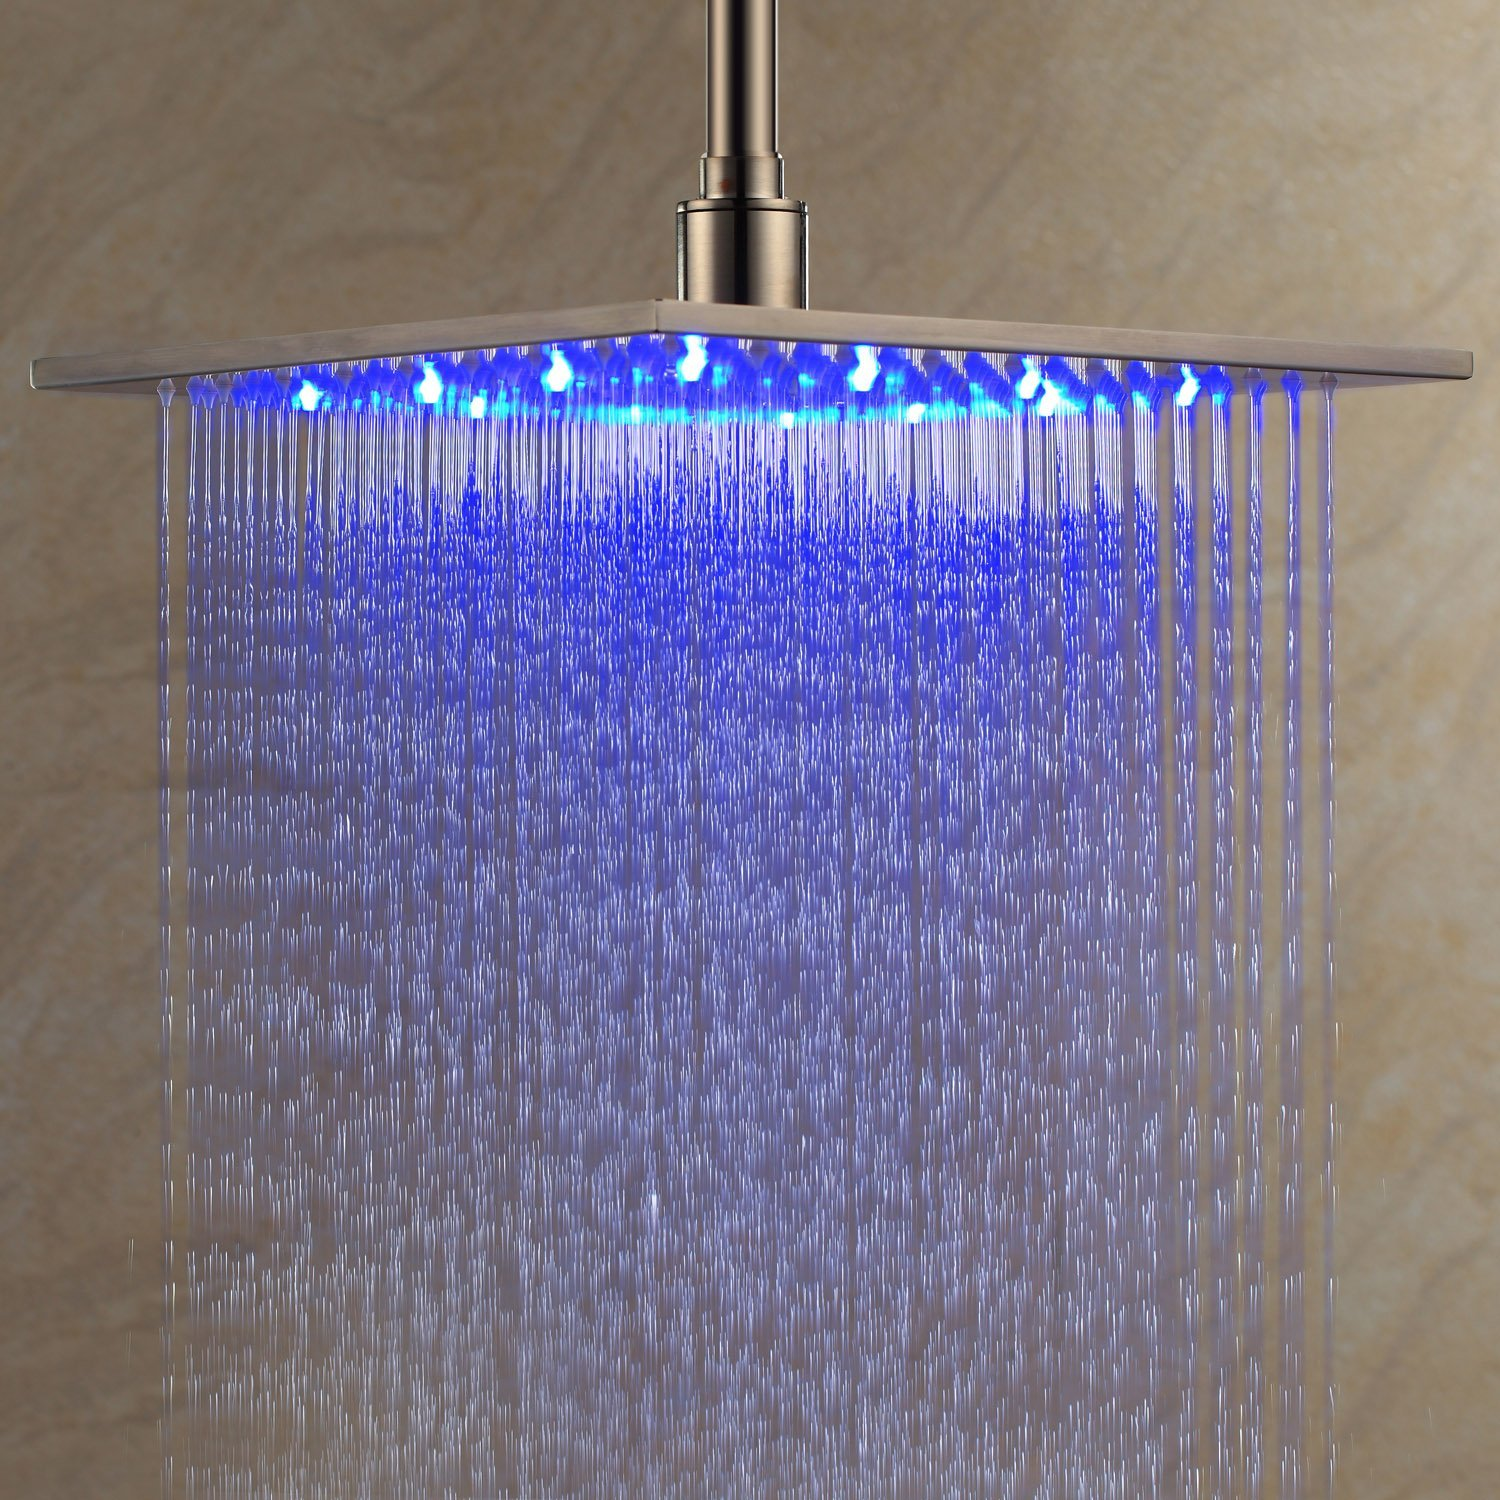 Installation at the head with led lighting - Lightinthebox Ceiling Mount Square 12 Inch Led Shower Head With Color Changing Light Stainless Steel Bathroom Shower Fixed Big Rainfall Bath Taps Mixers